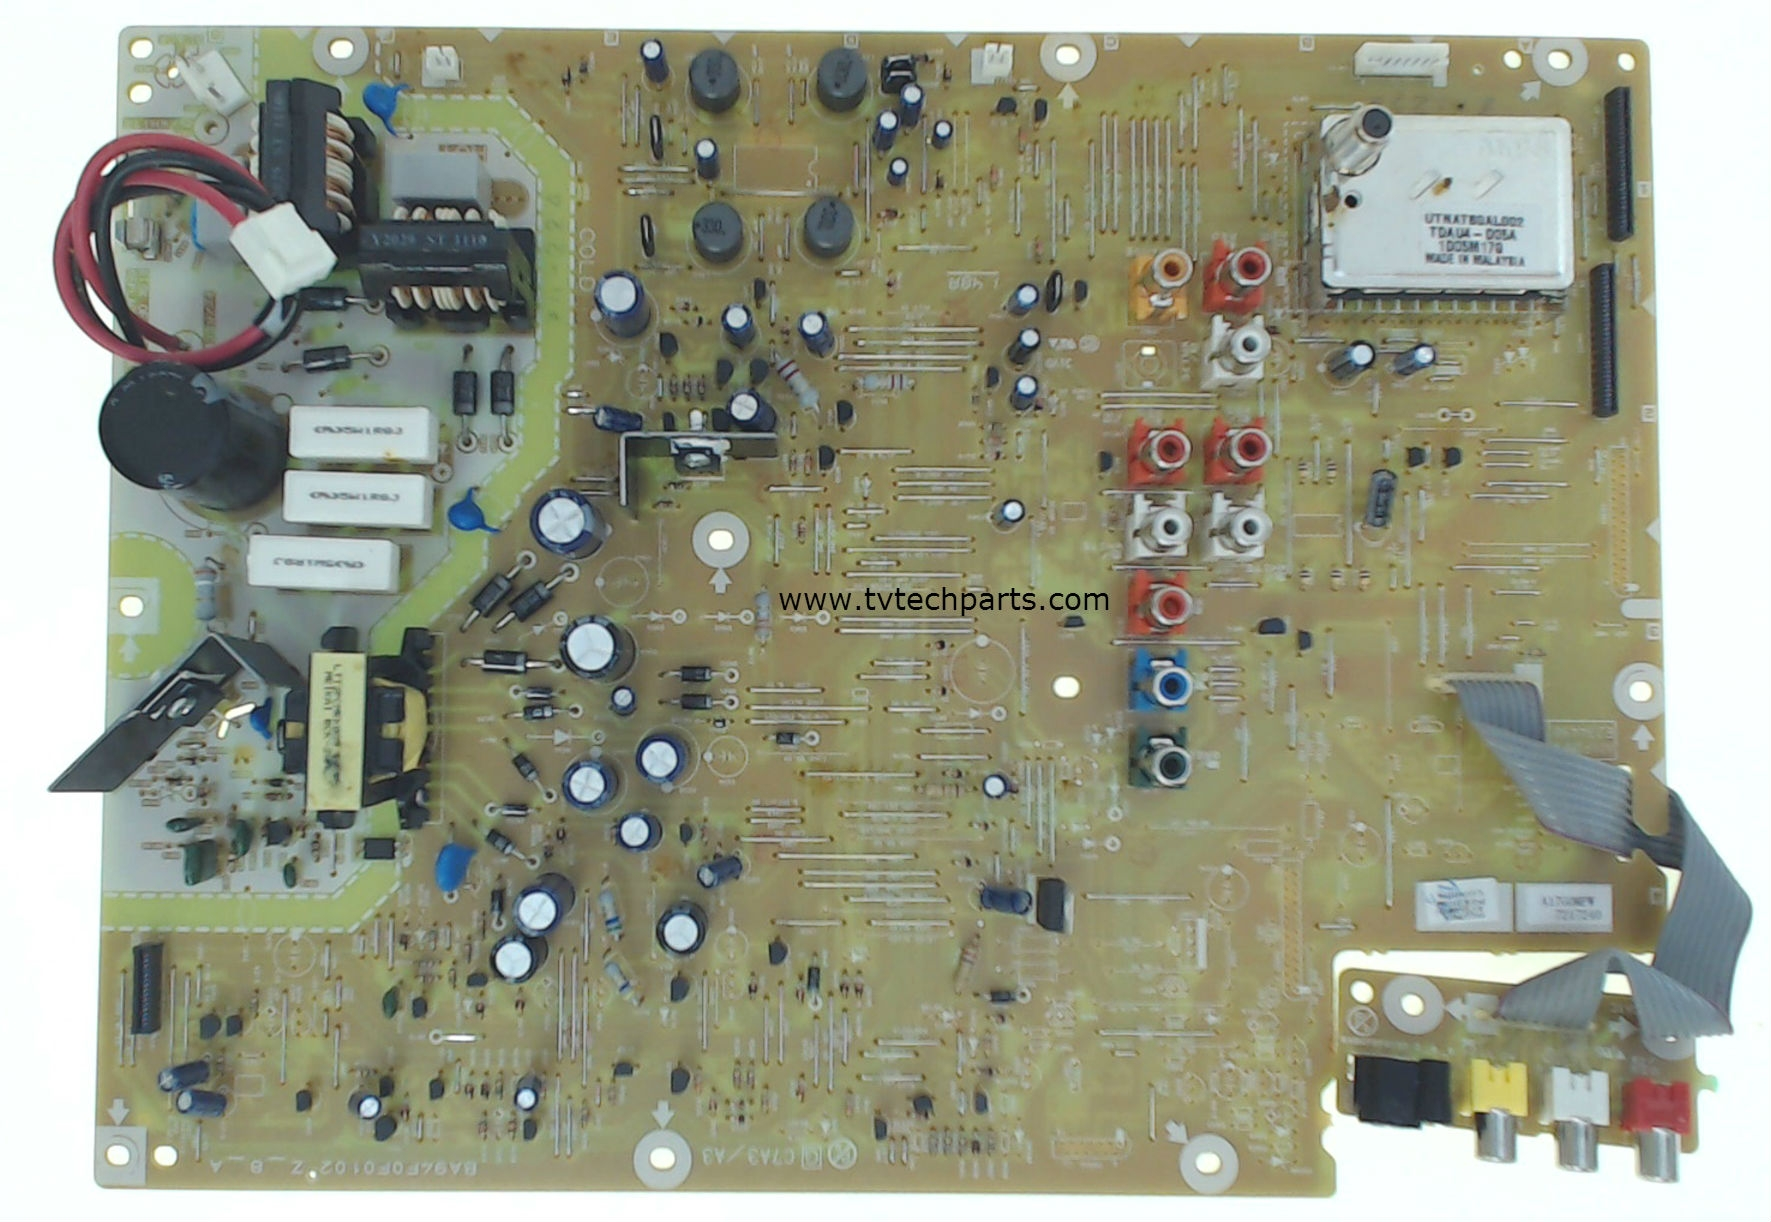 Magnavox Model 37MF301B/F7 Power Supply Board Part Number A17G0MPW-001